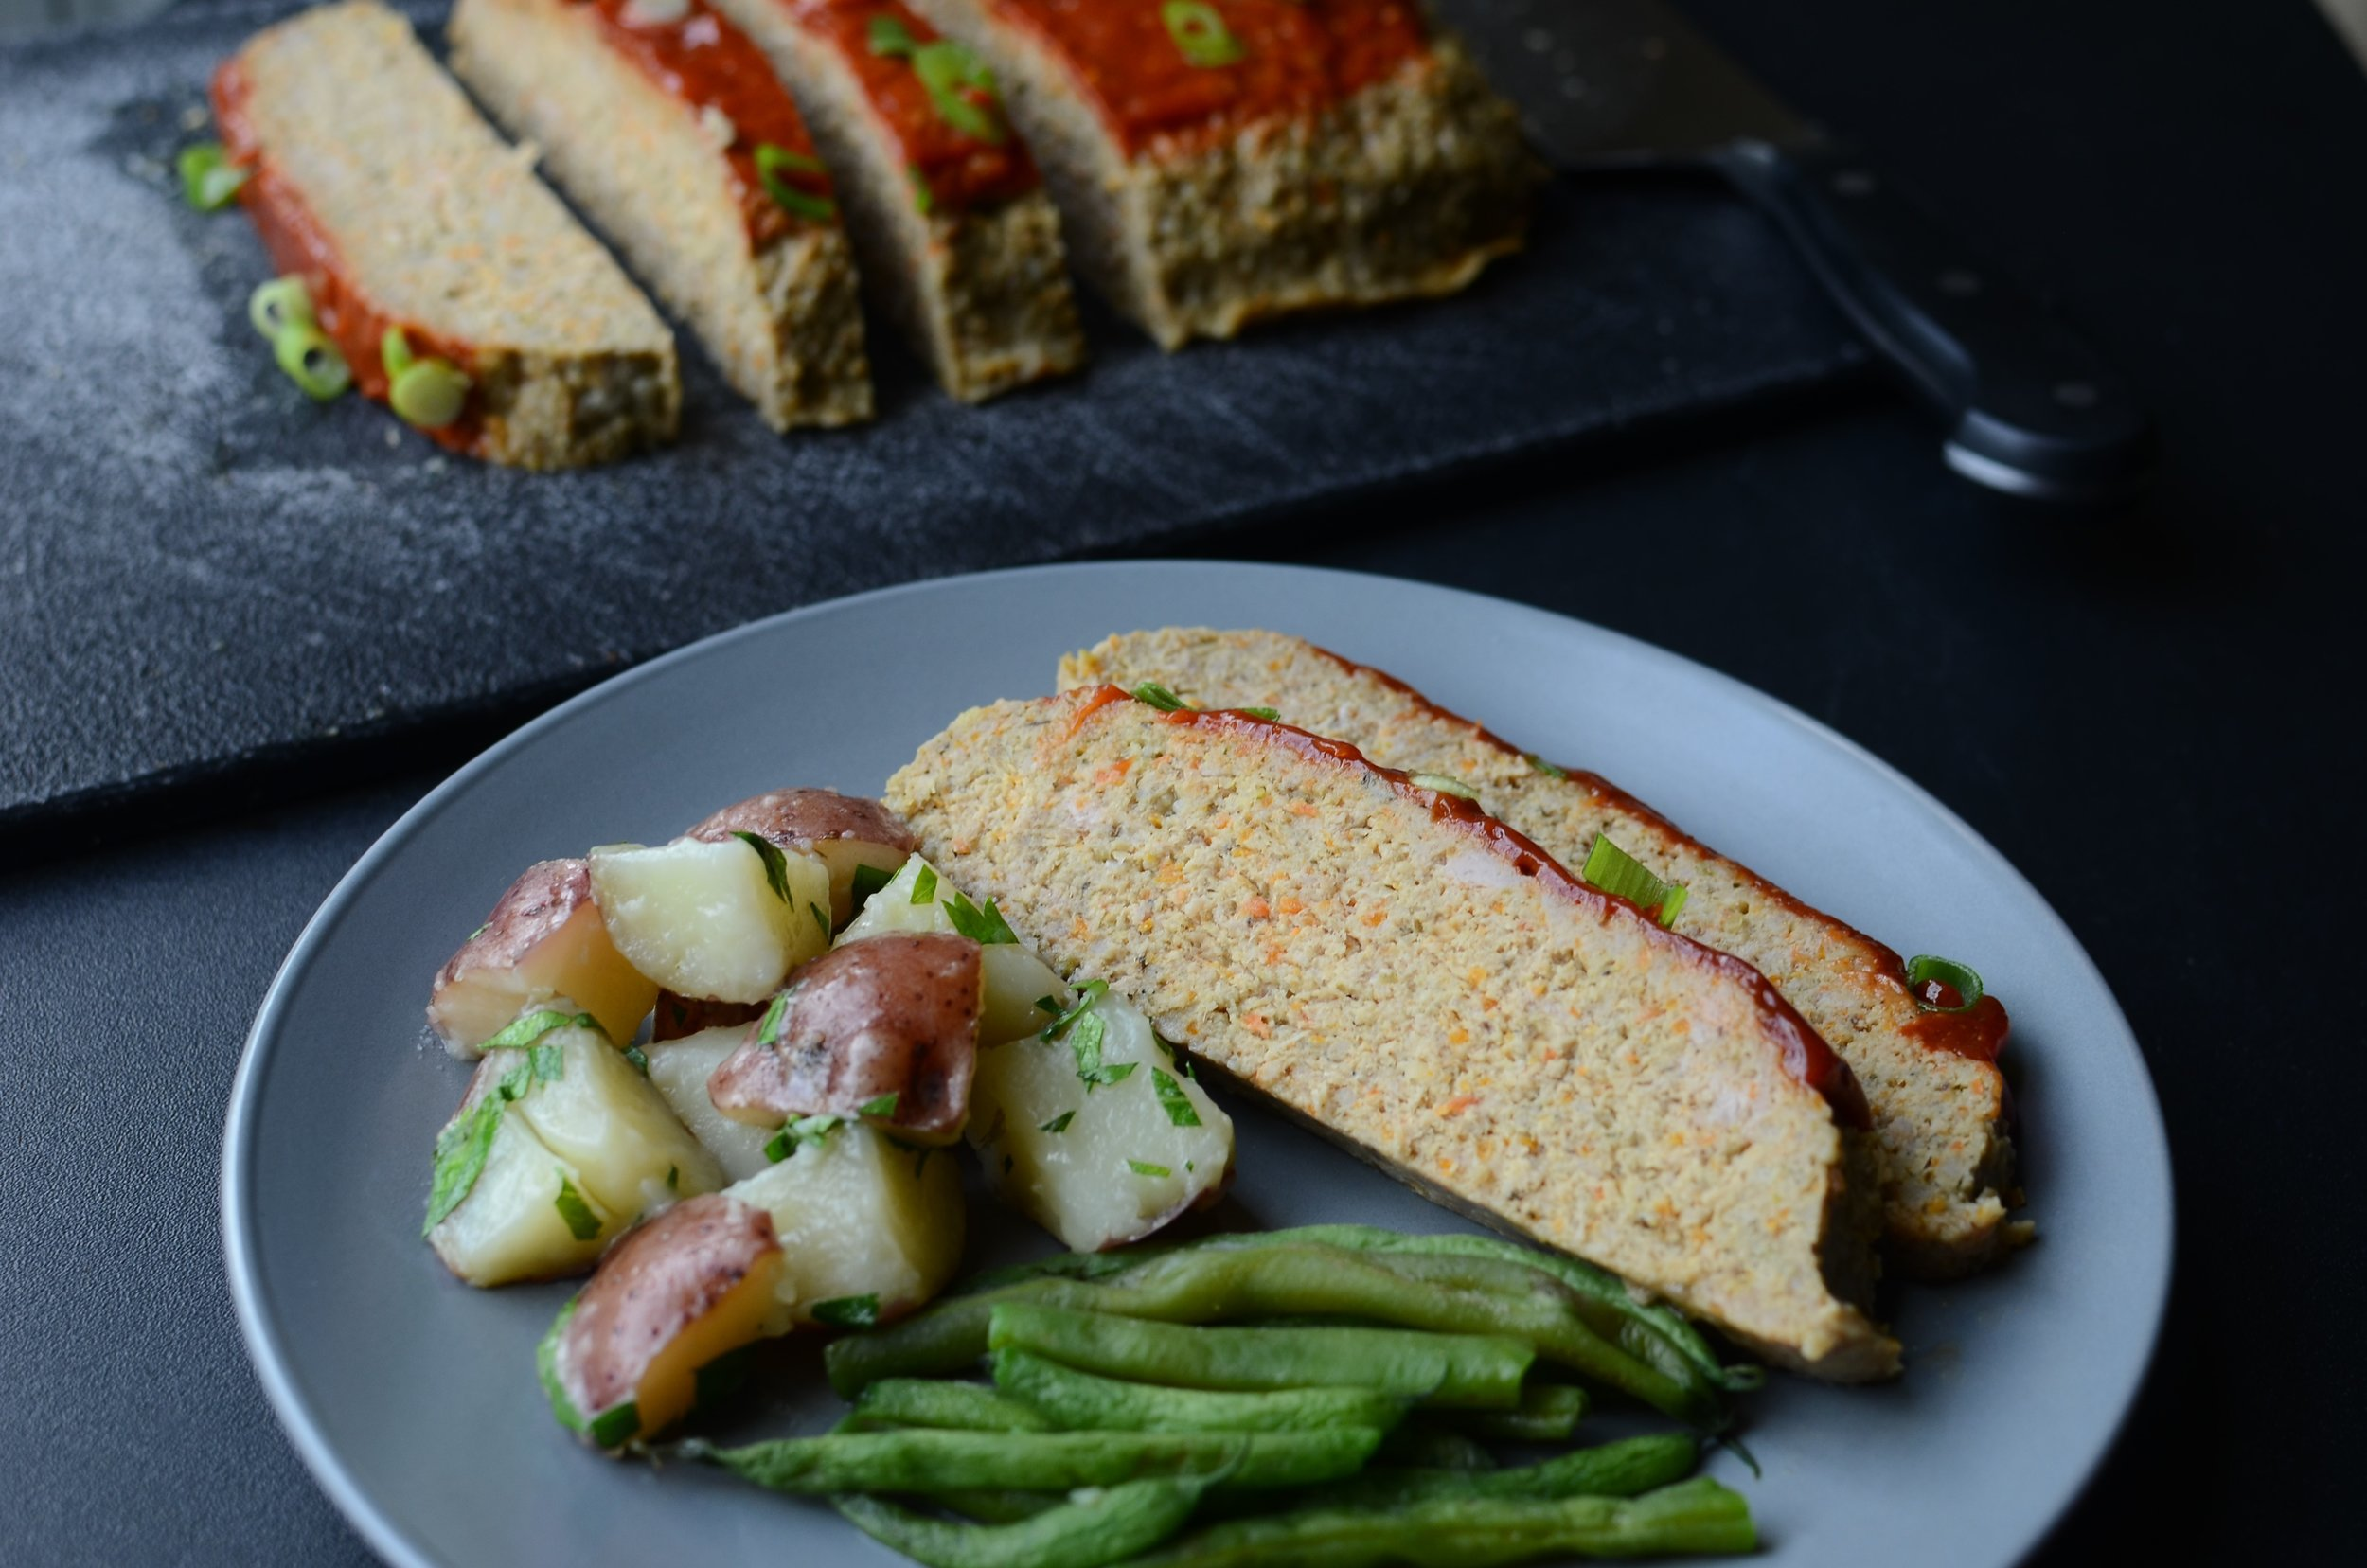 Turkey Meatloaf recipe with how-t0 photos